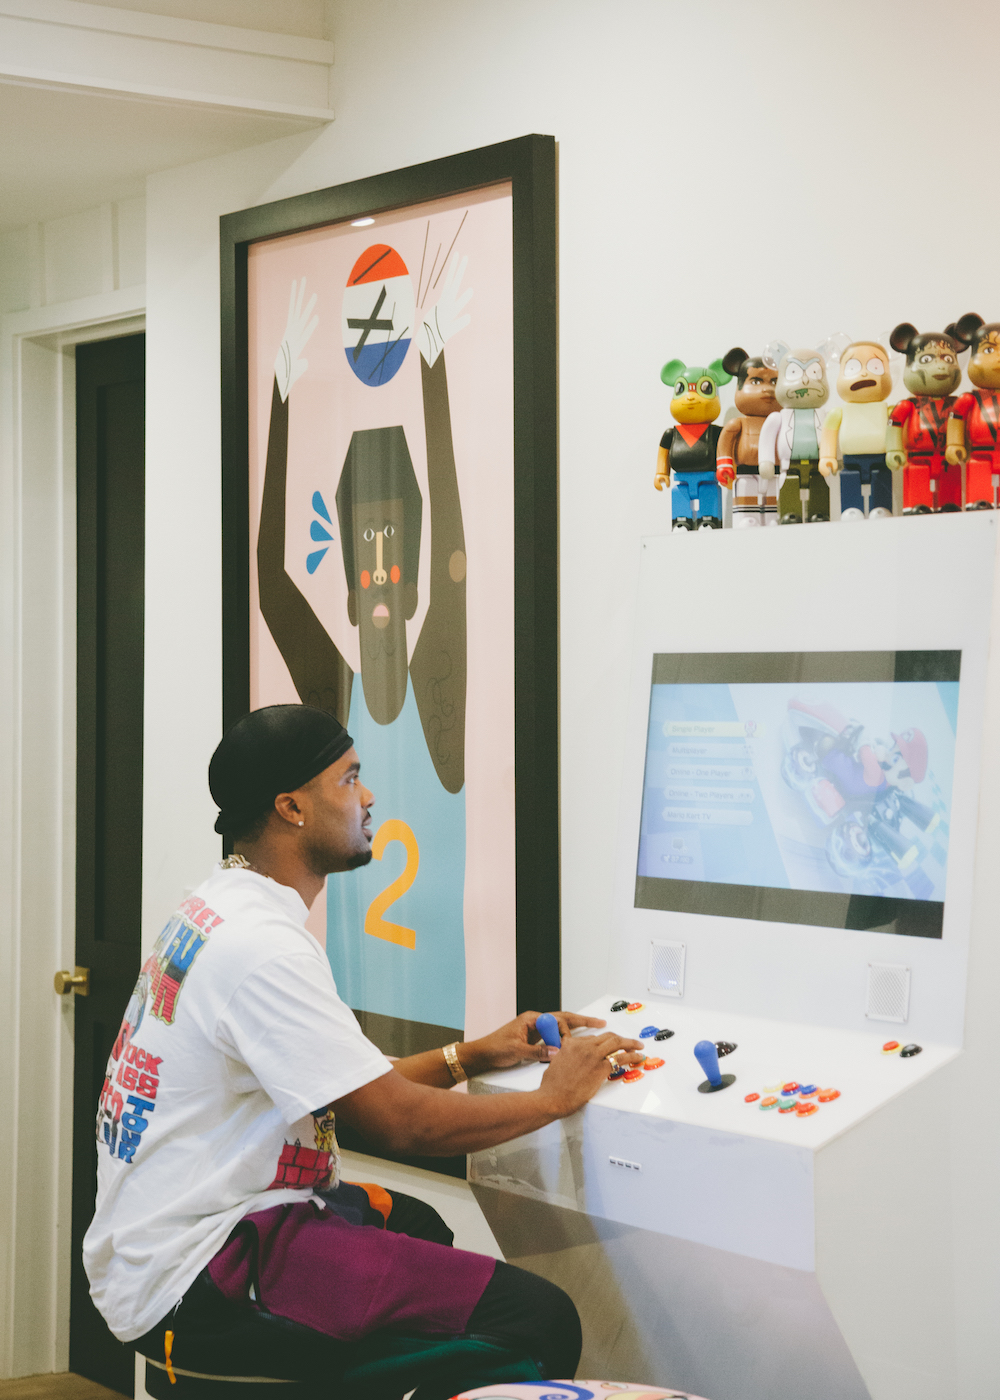 steelo brim playing a video game on white modern looking console